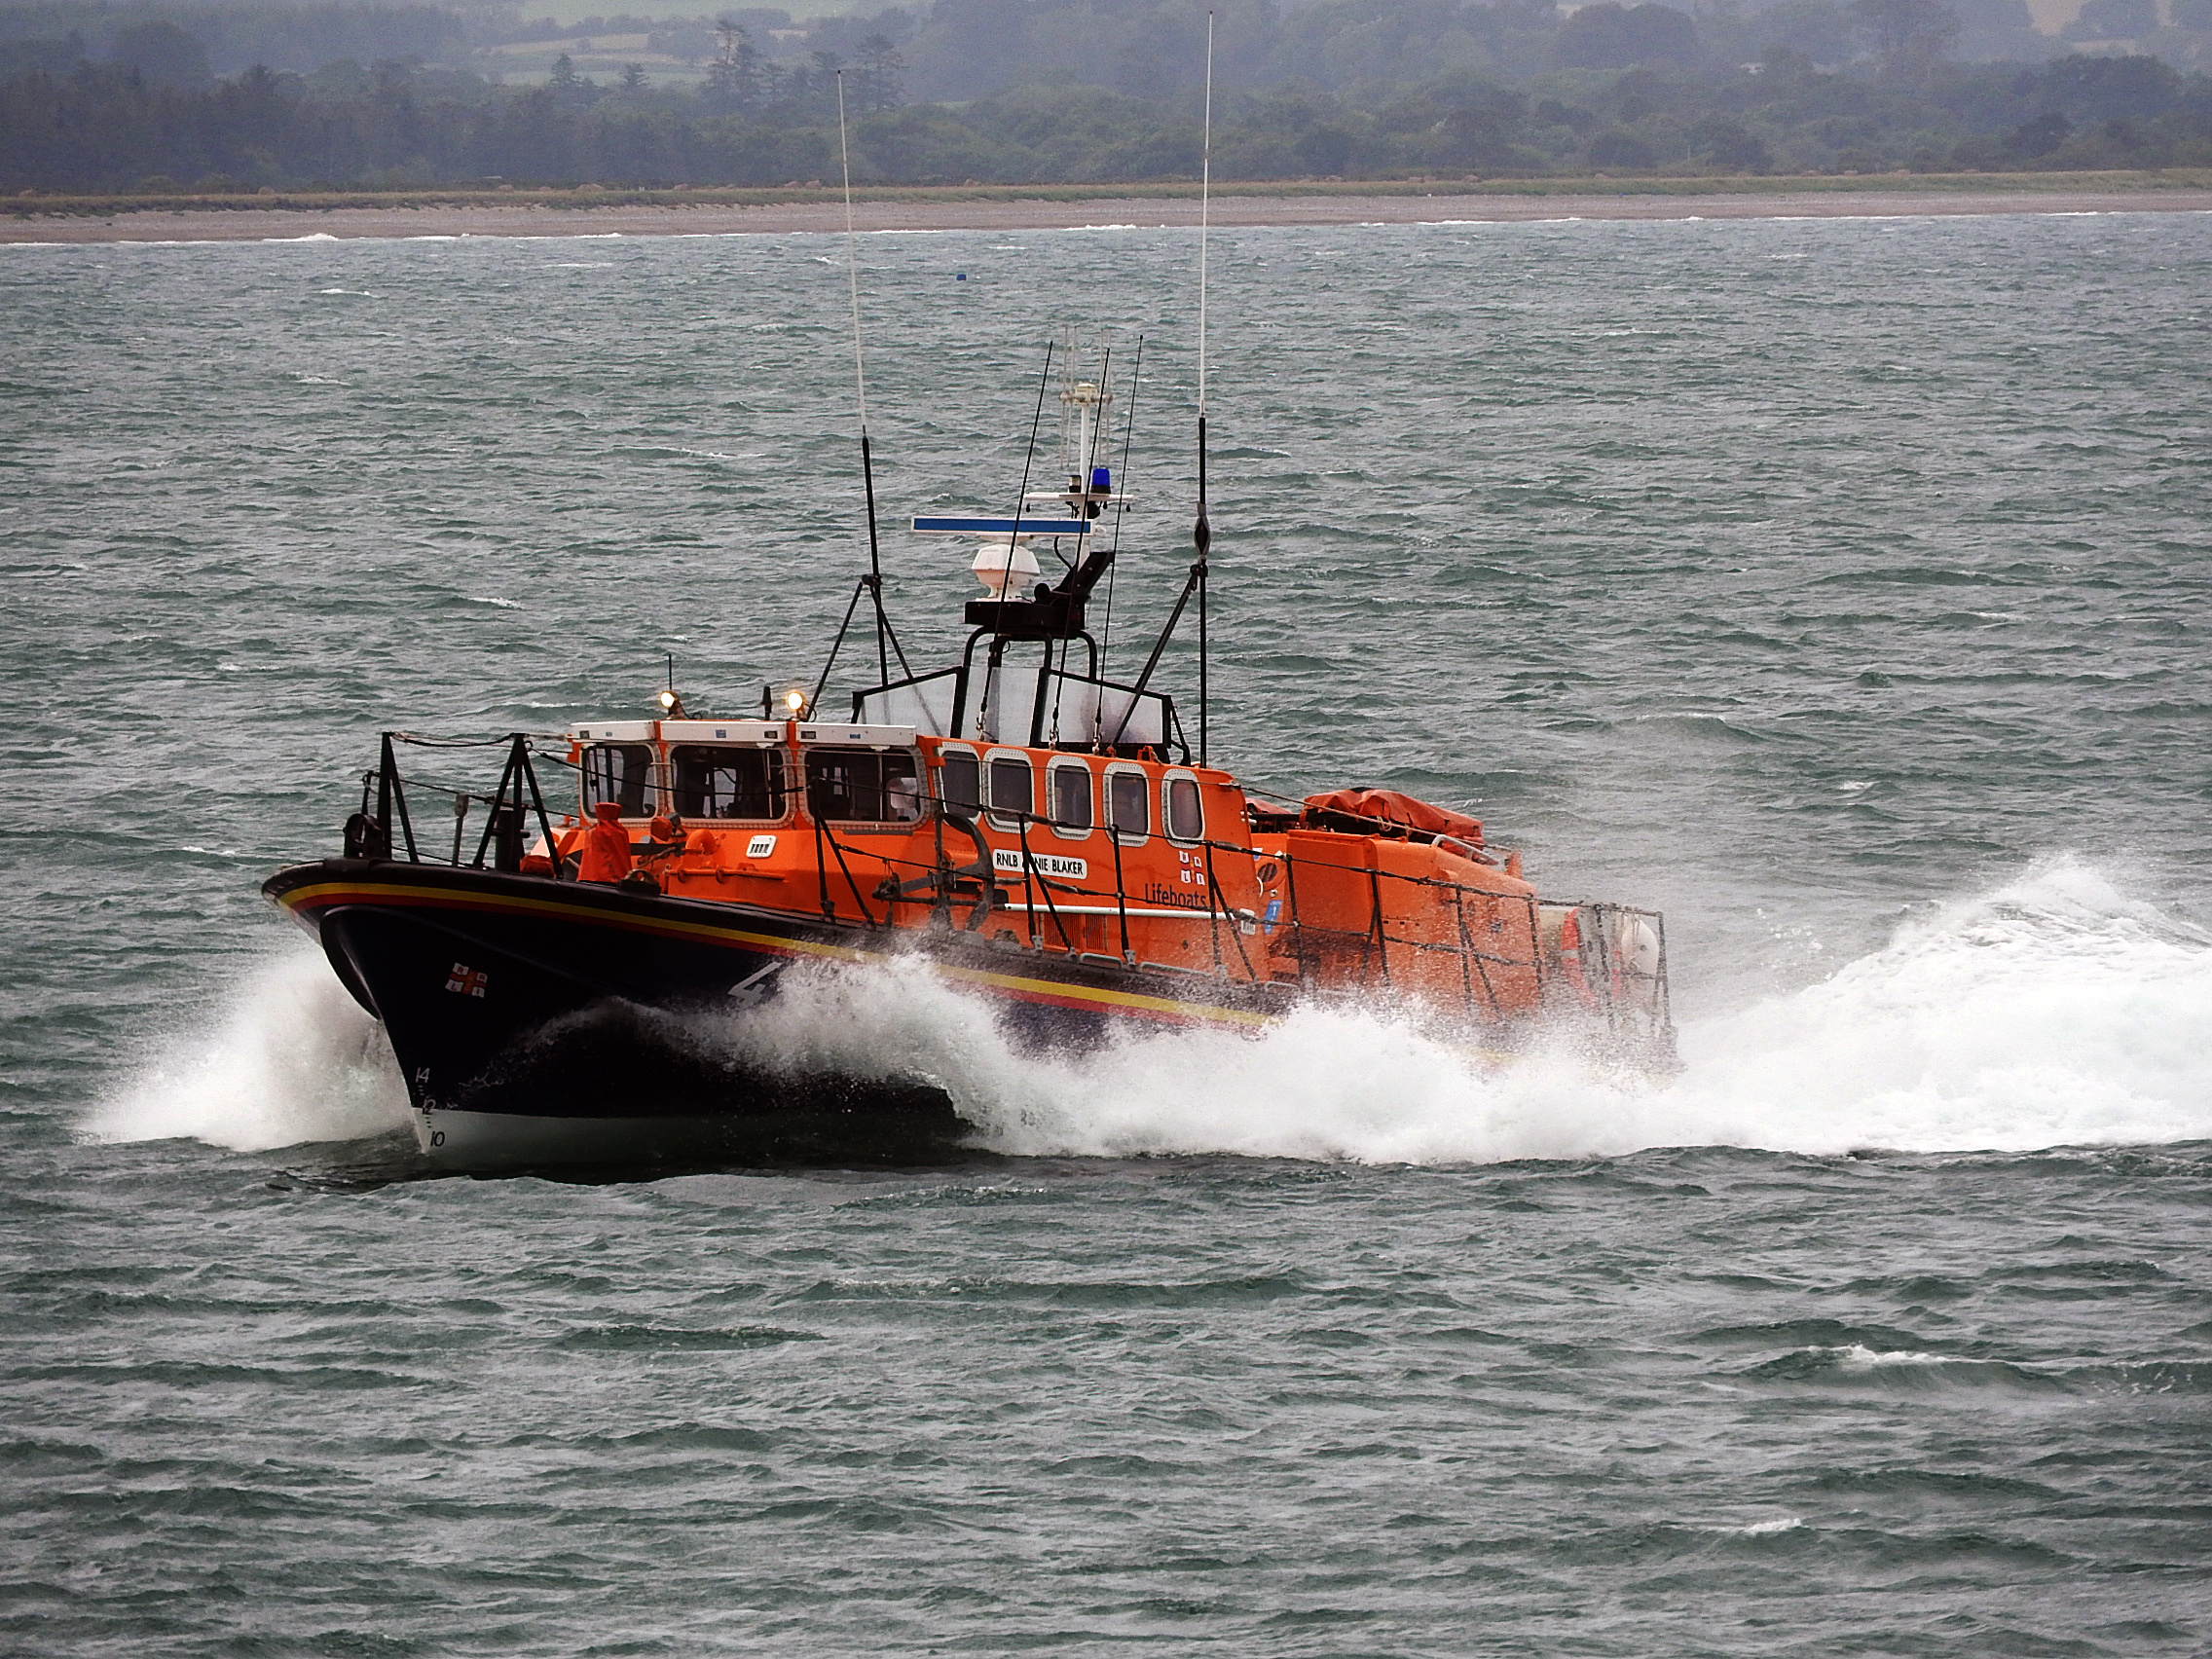 File photo of Wicklow all-weather lifeboat